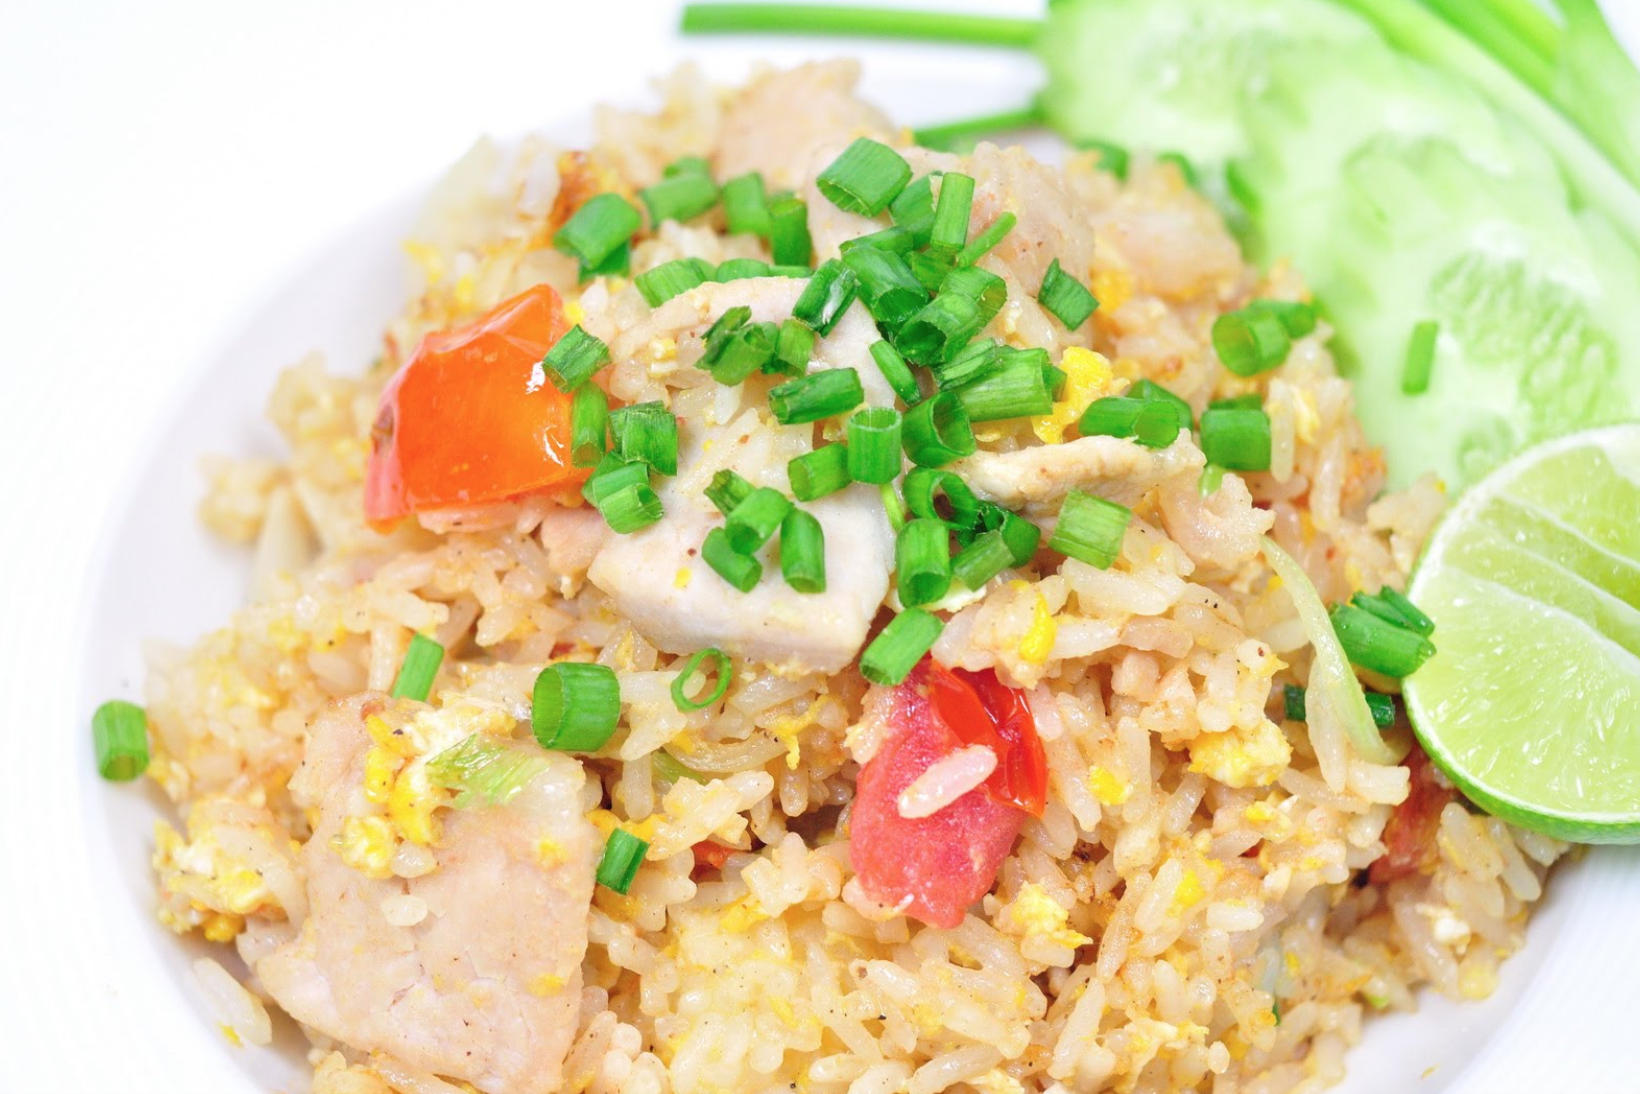 Fried Rice with chicken or tofu - $10   Ingredients: Jasmine rice stir fried with egg, soy sauce, carrots, green beans, corn, peas, green onions, white onions, and a dash of pepper on top.